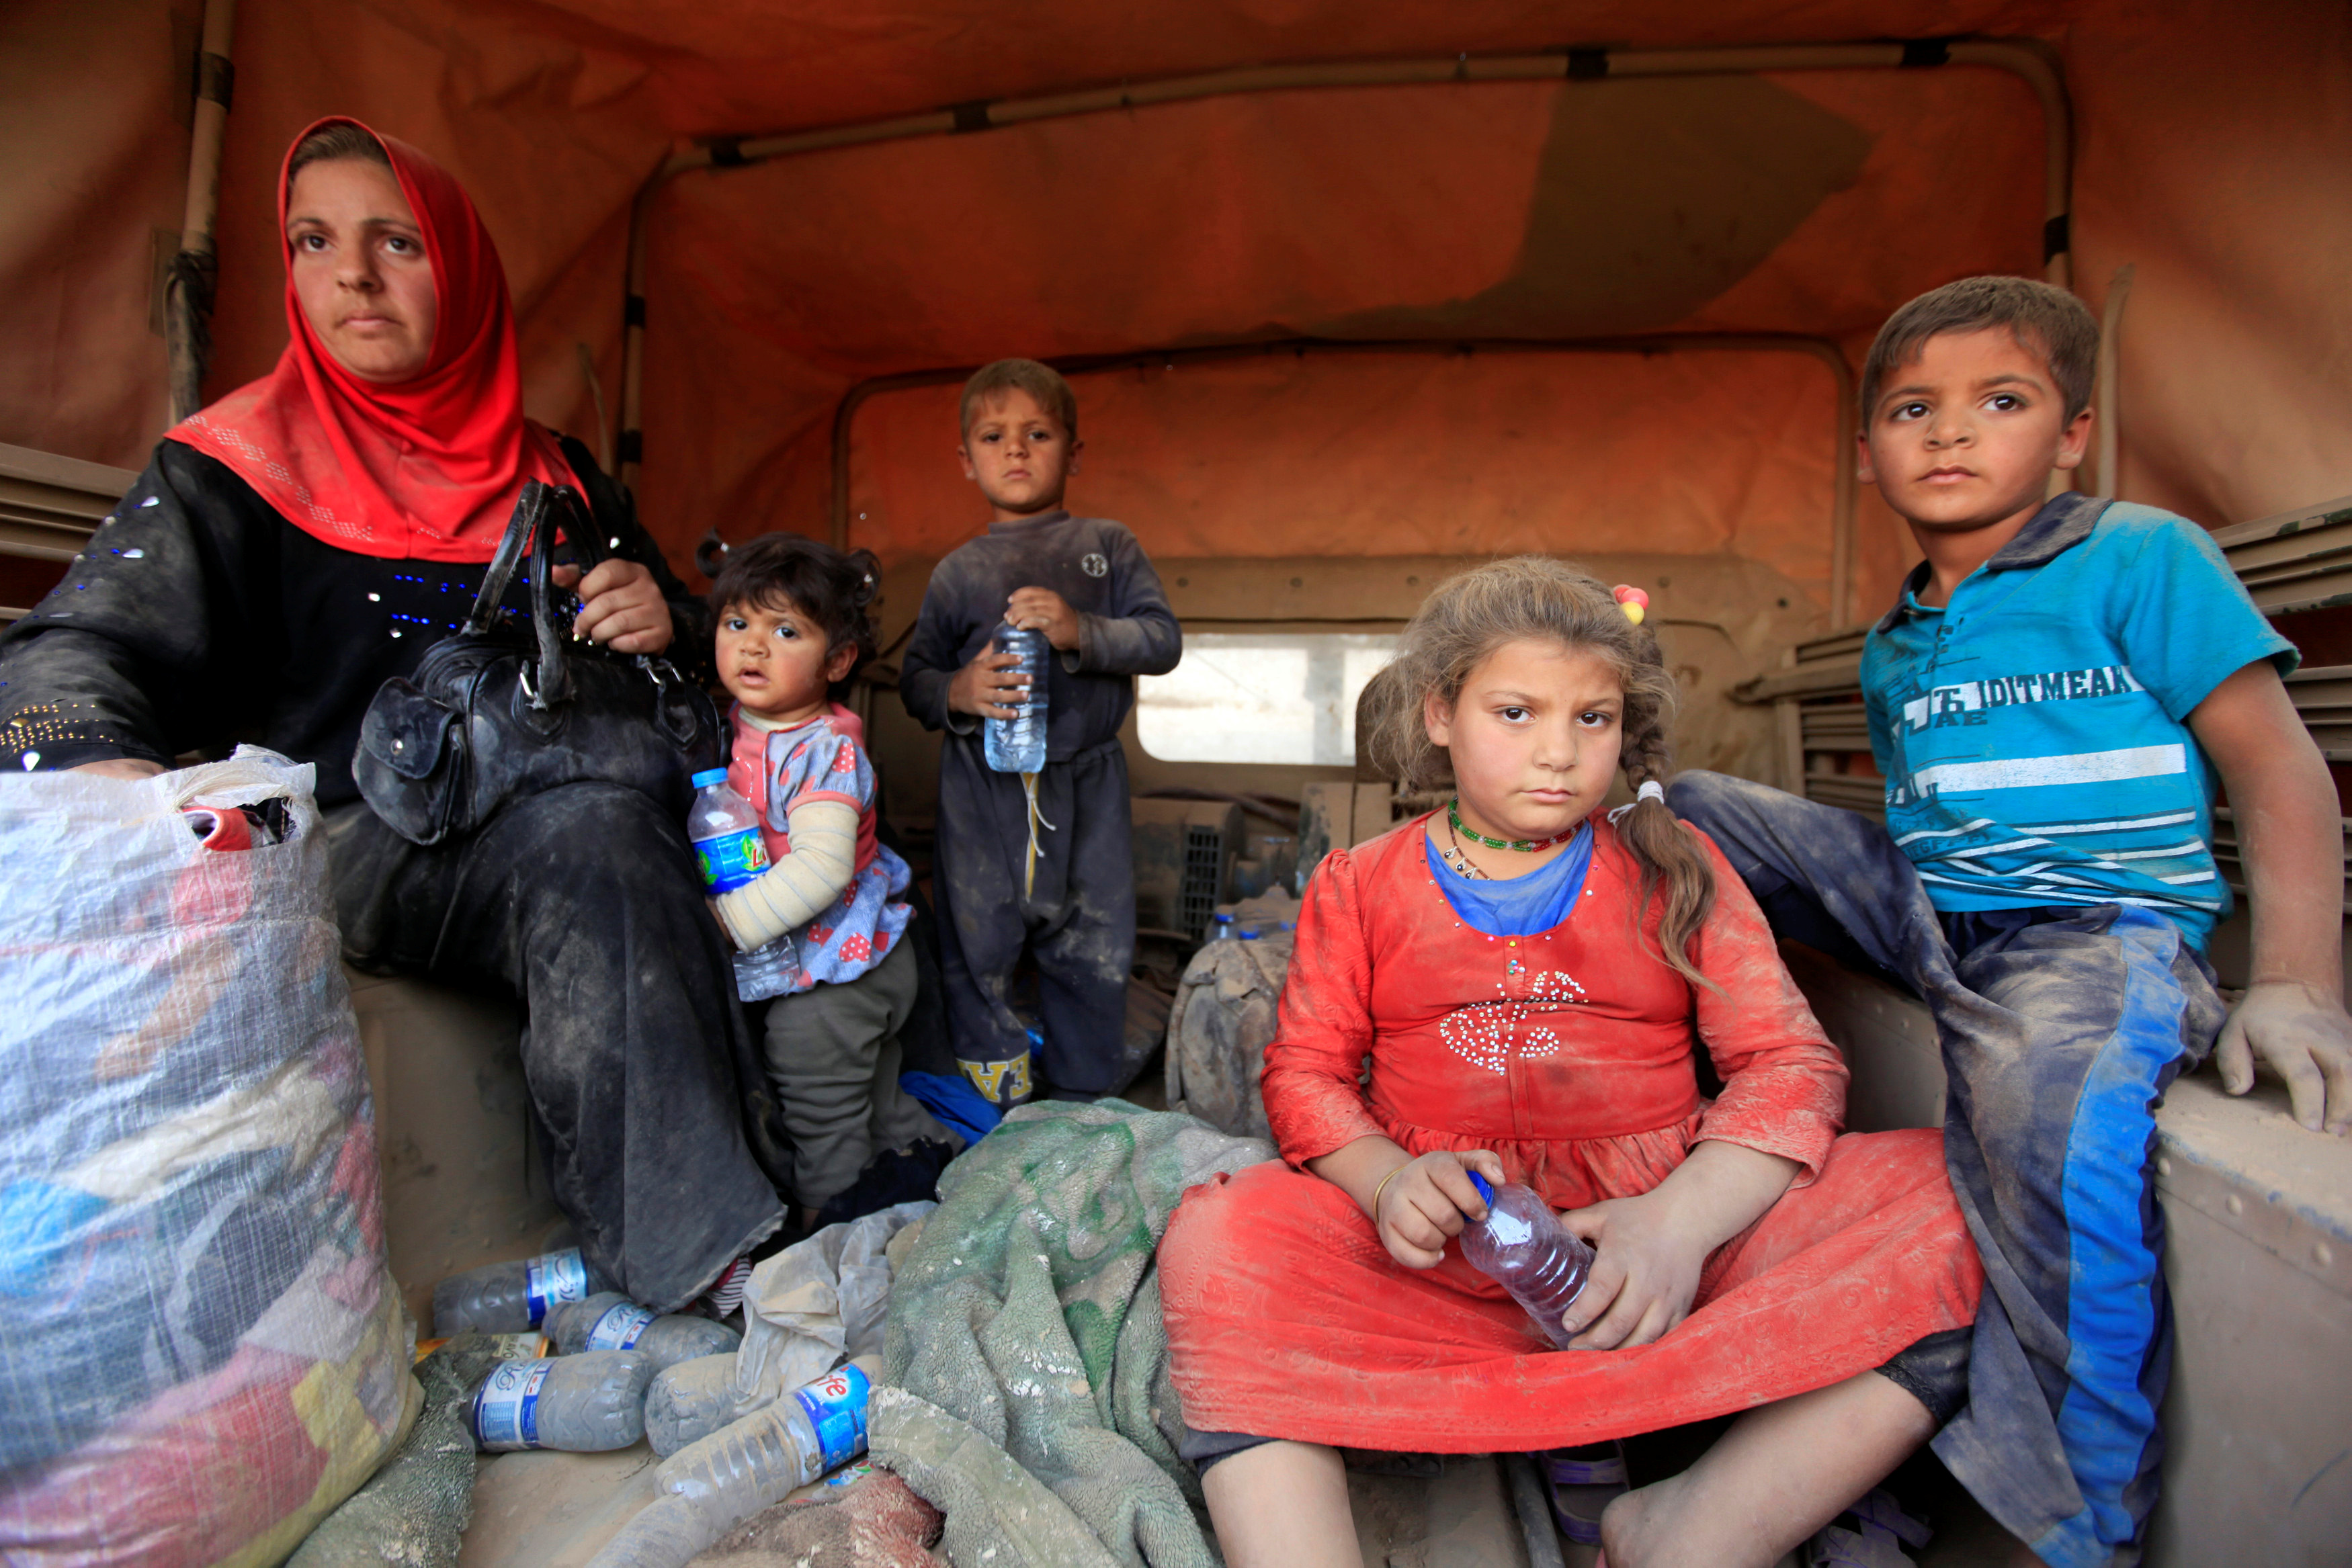 About 300,000 people have fled other towns in Iraq as forces moved toward Mosul, according to Mercy Corps. Photo by Alaa Al-Marjani/Reuters